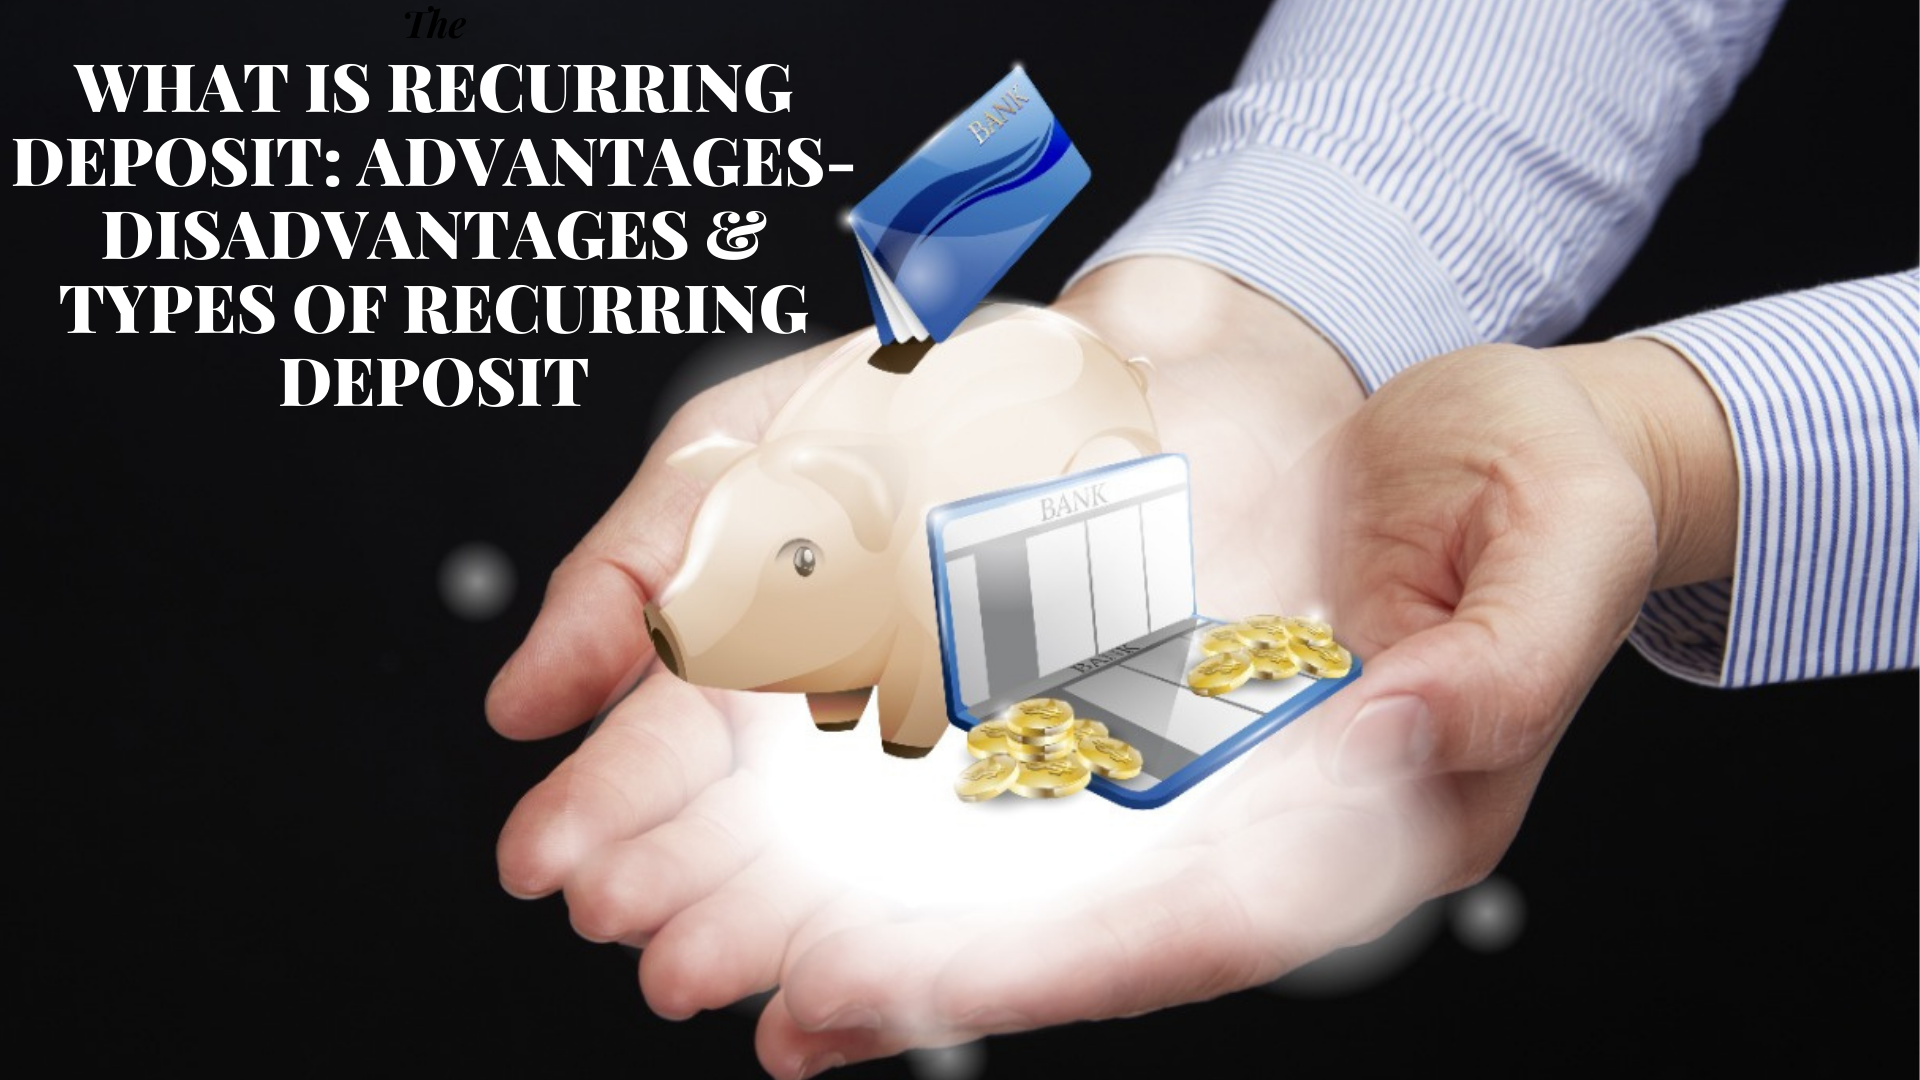 What is Recurring Deposit: Advantages-Disadvantages & Types of Recurring Deposit